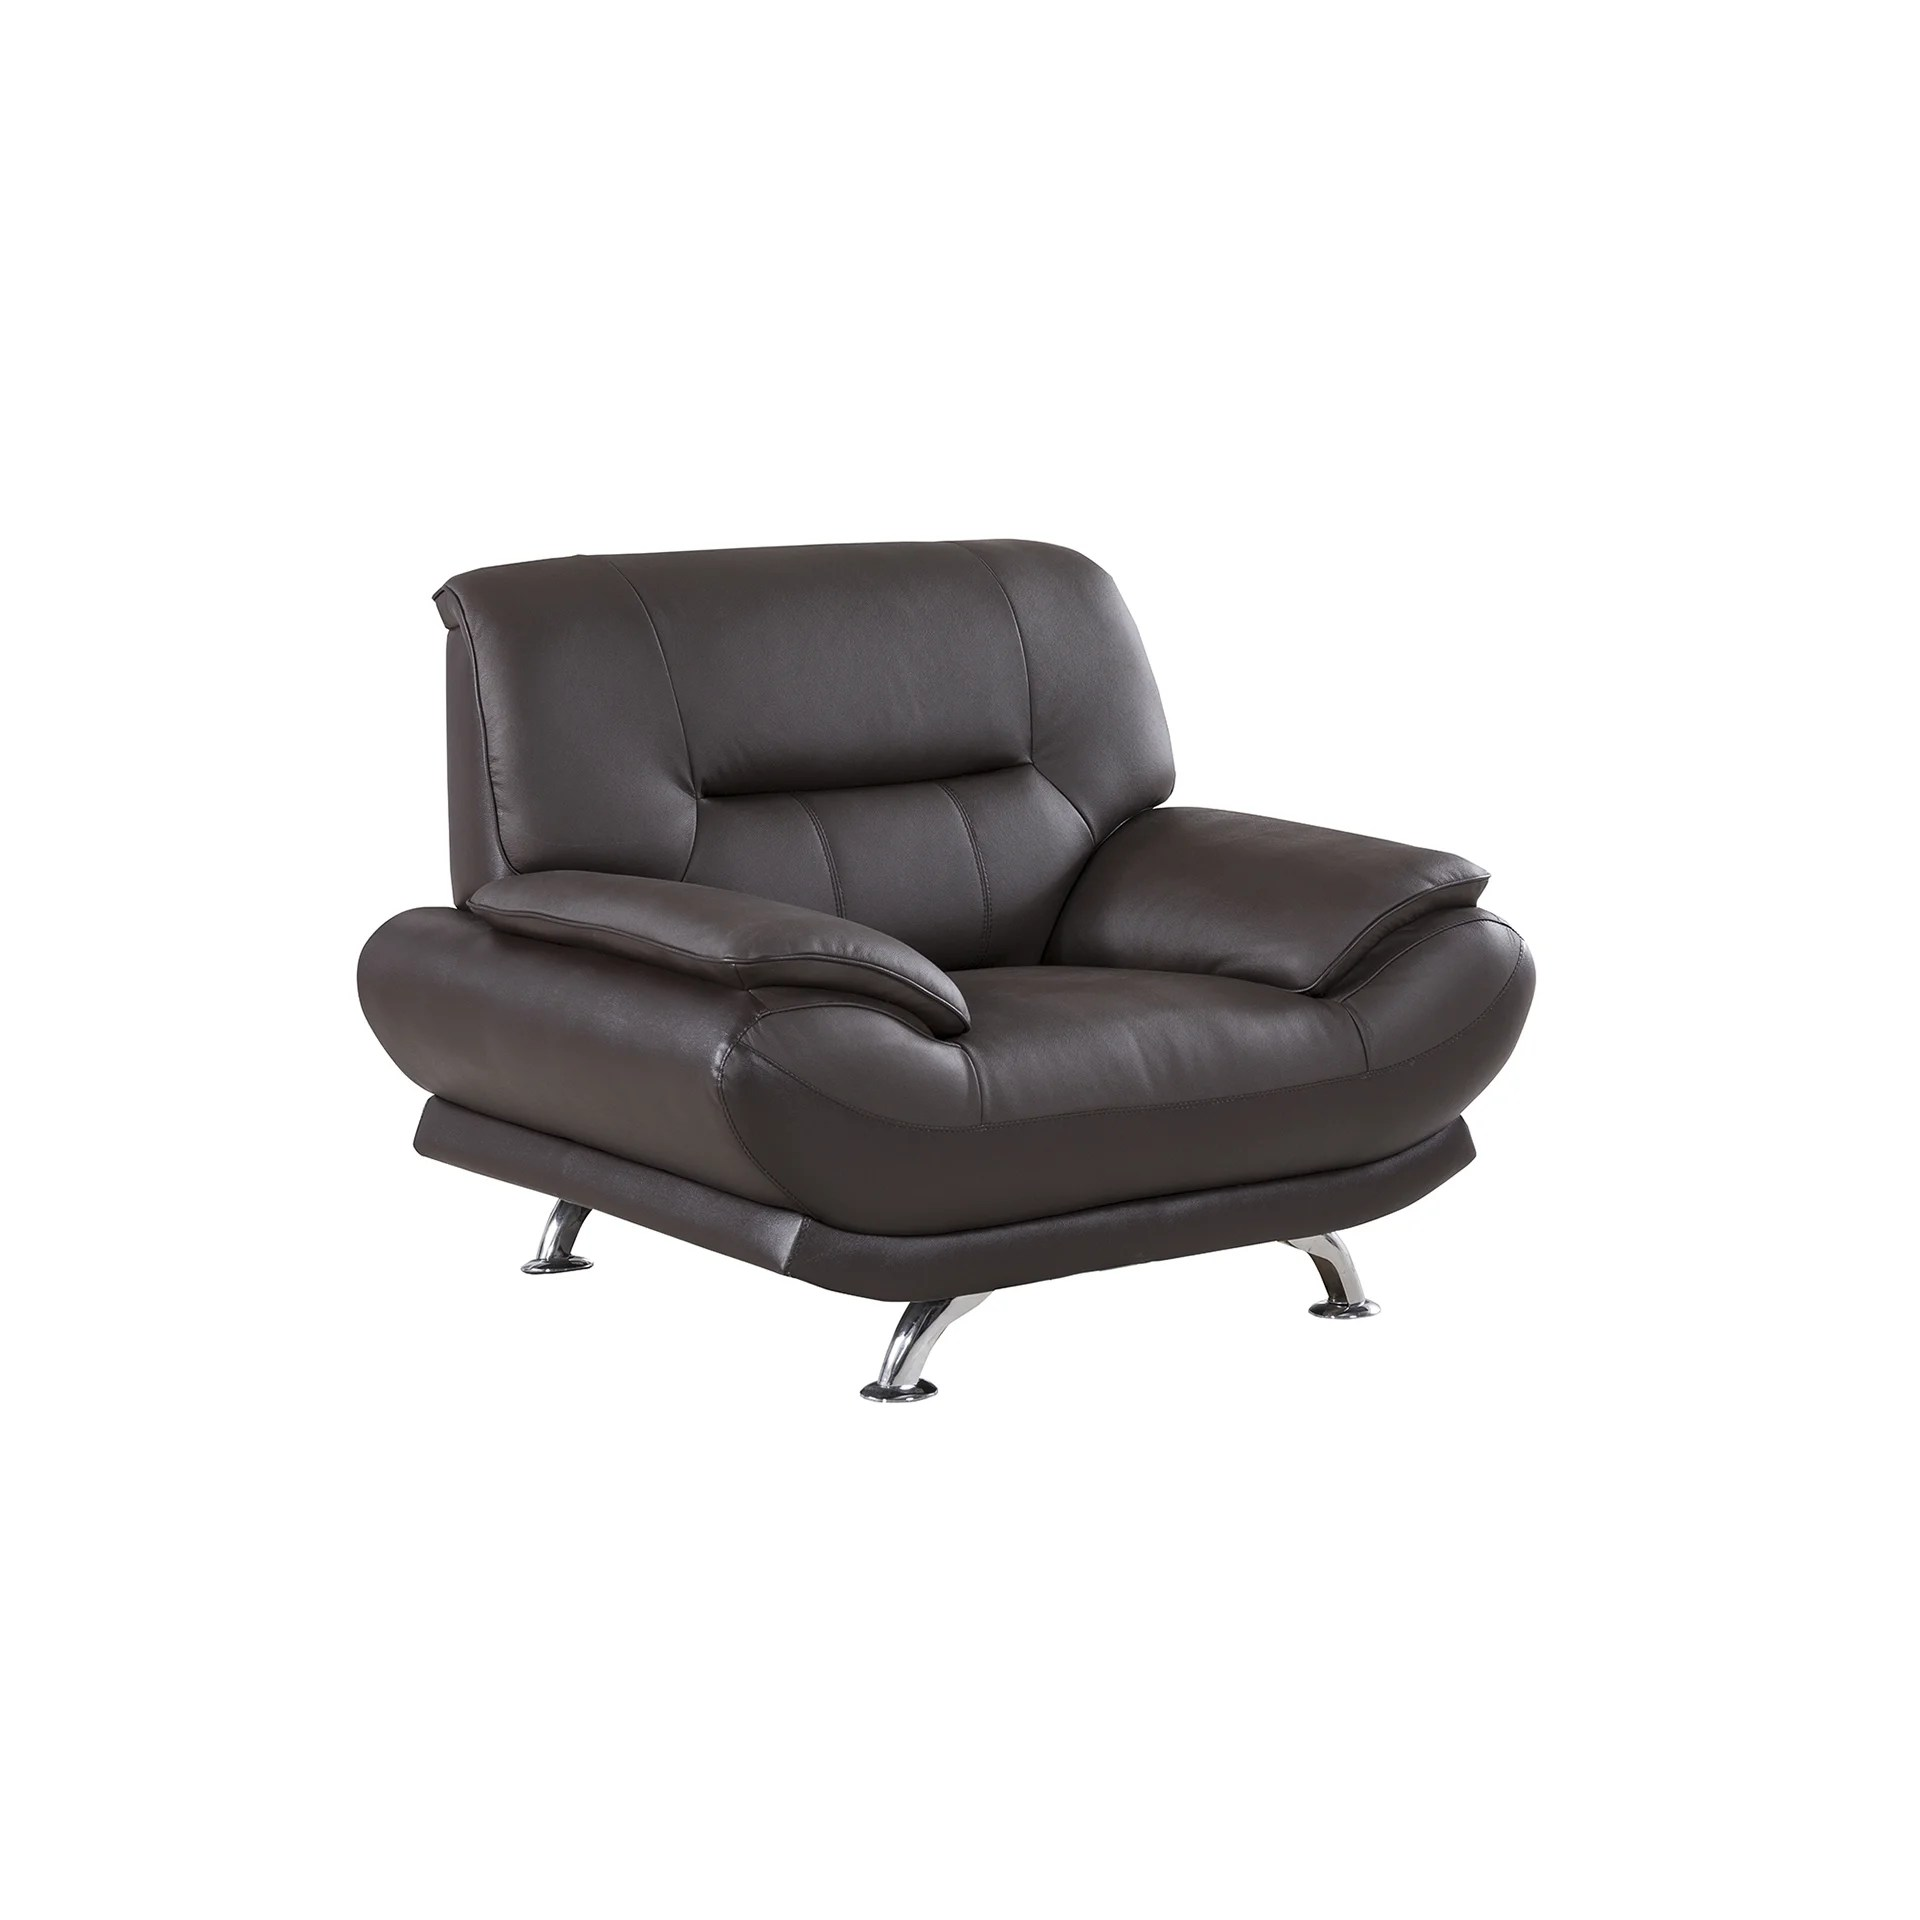 genuine leather chair ikea directors shop dark chocolate free shipping today overstock com 13519417